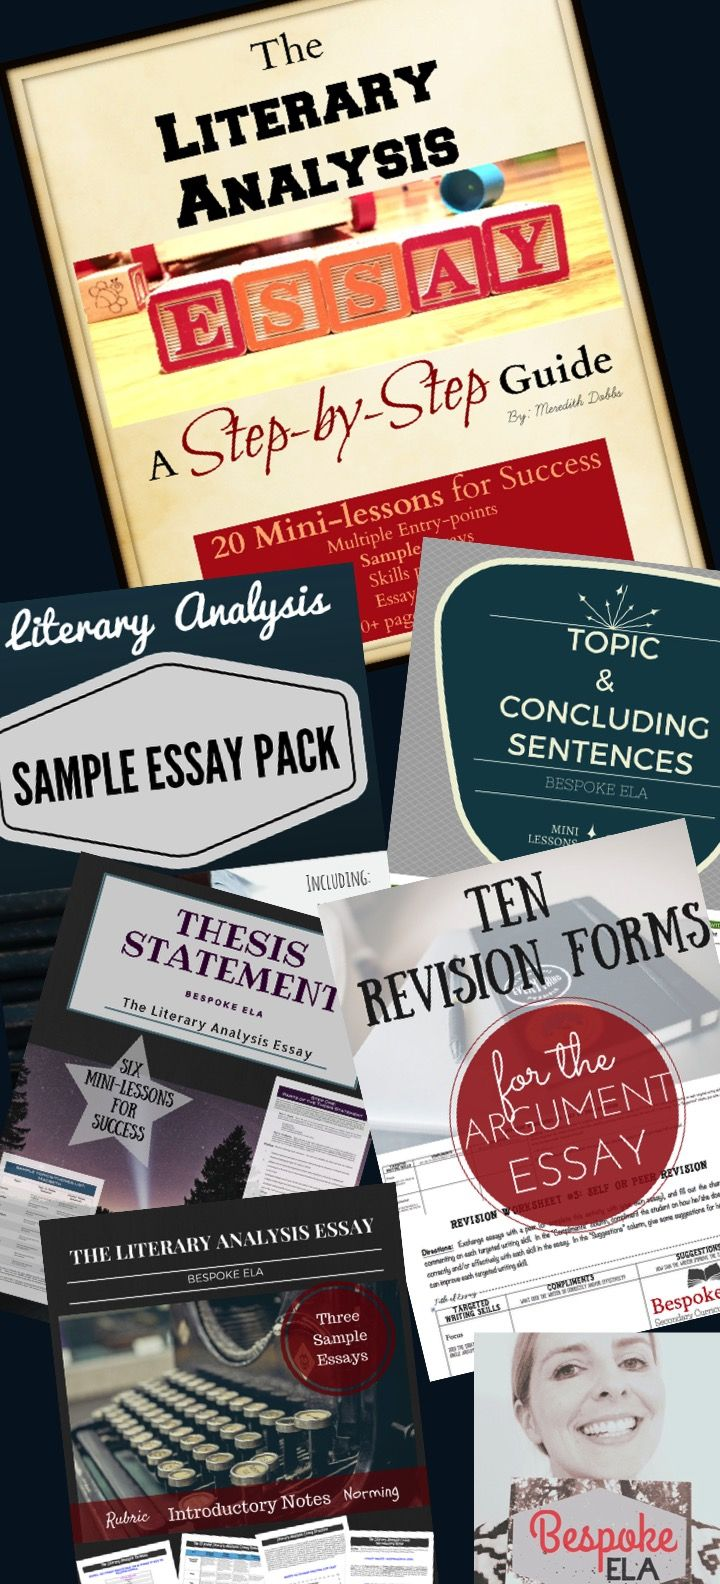 mega essays best ideas about sample essay argumentative the  best ideas about sample essay argumentative mega bundle the literary analysis essay guide in 20 mini